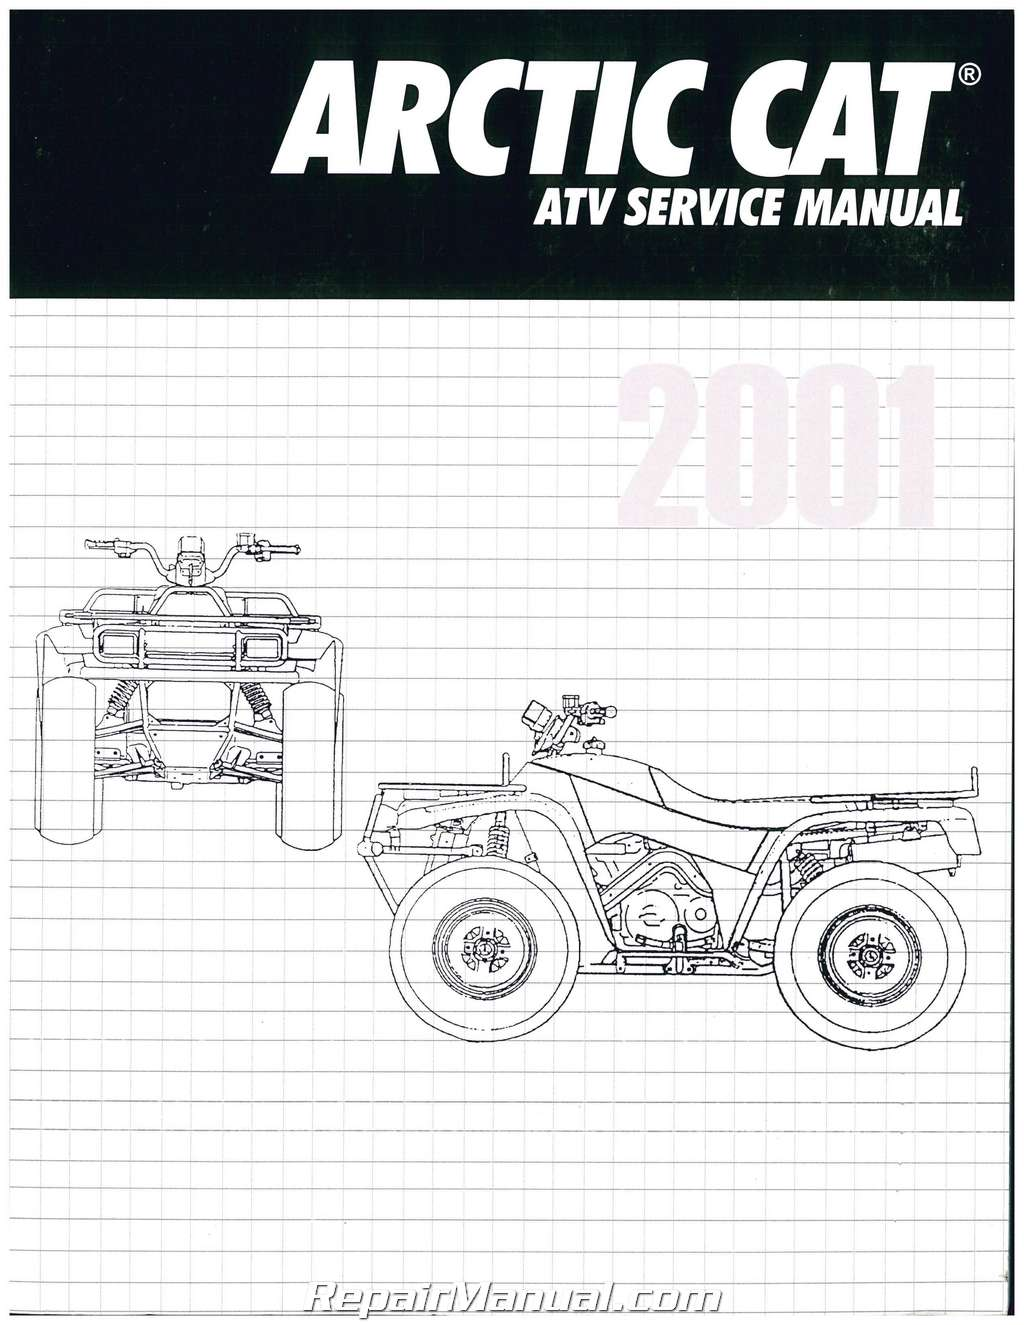 2001 arctic cat 250 300 400 500 atv service manual rh repairmanual com arctic cat 2001 atv service manual arctic cat atv service manuals free